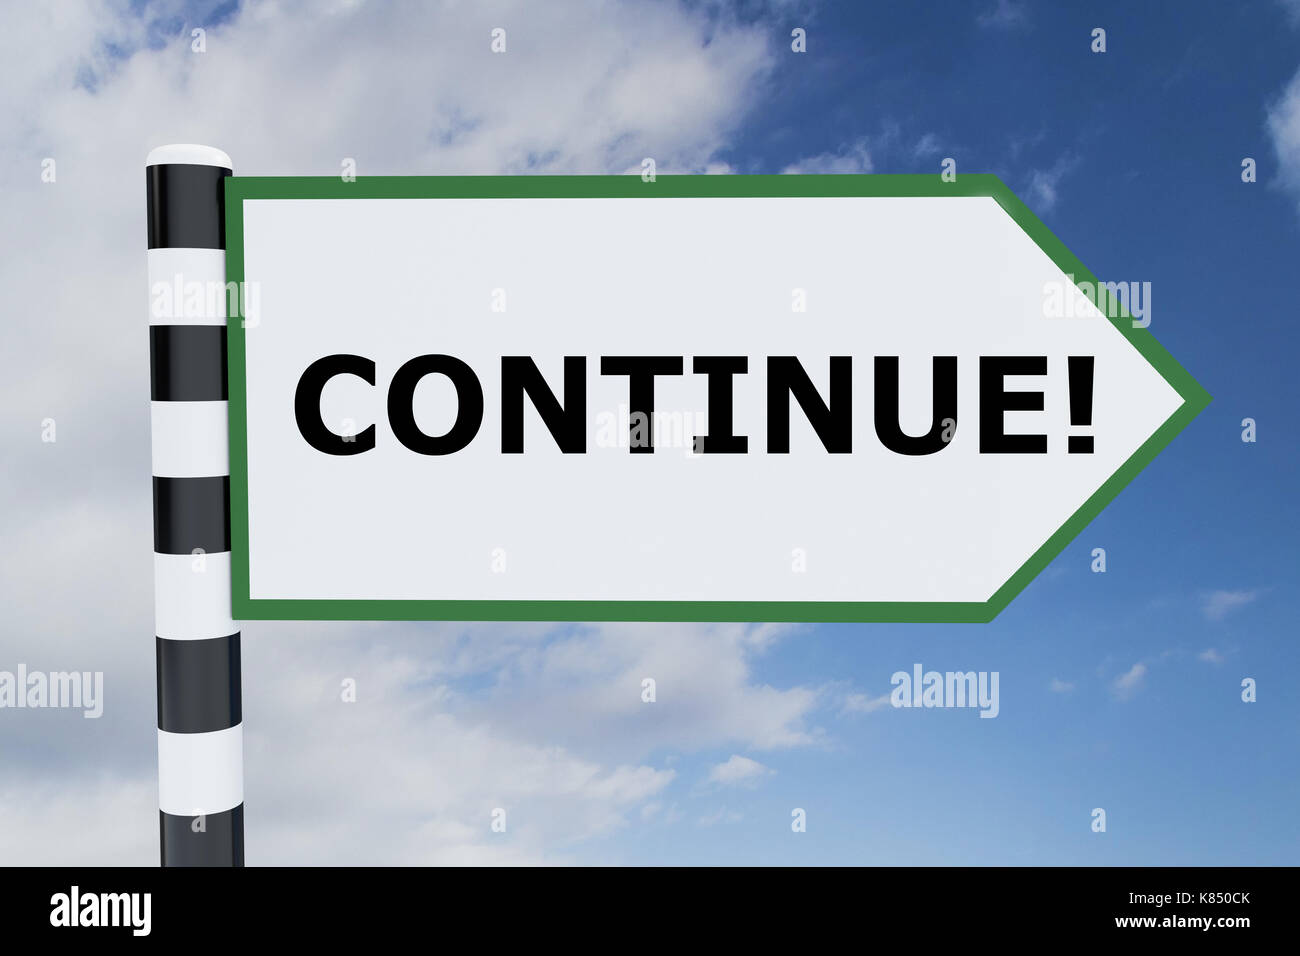 """3D illustration of """"CONTINUE!"""" script on road sign Stock Photo"""